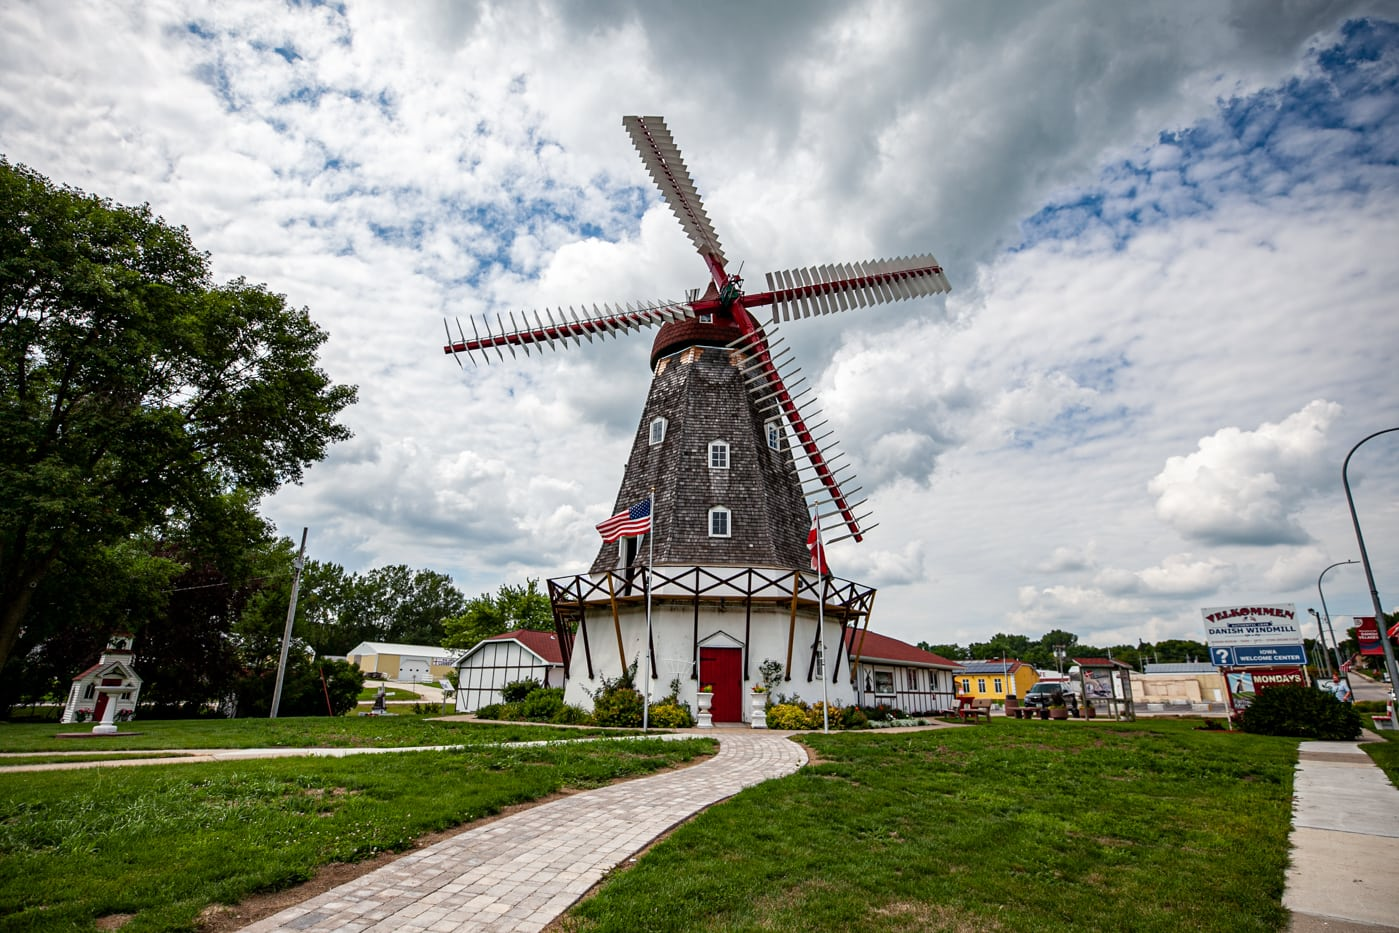 Danish Windmill in Elk Horn, Iowa | Iowa Roadside Attractions